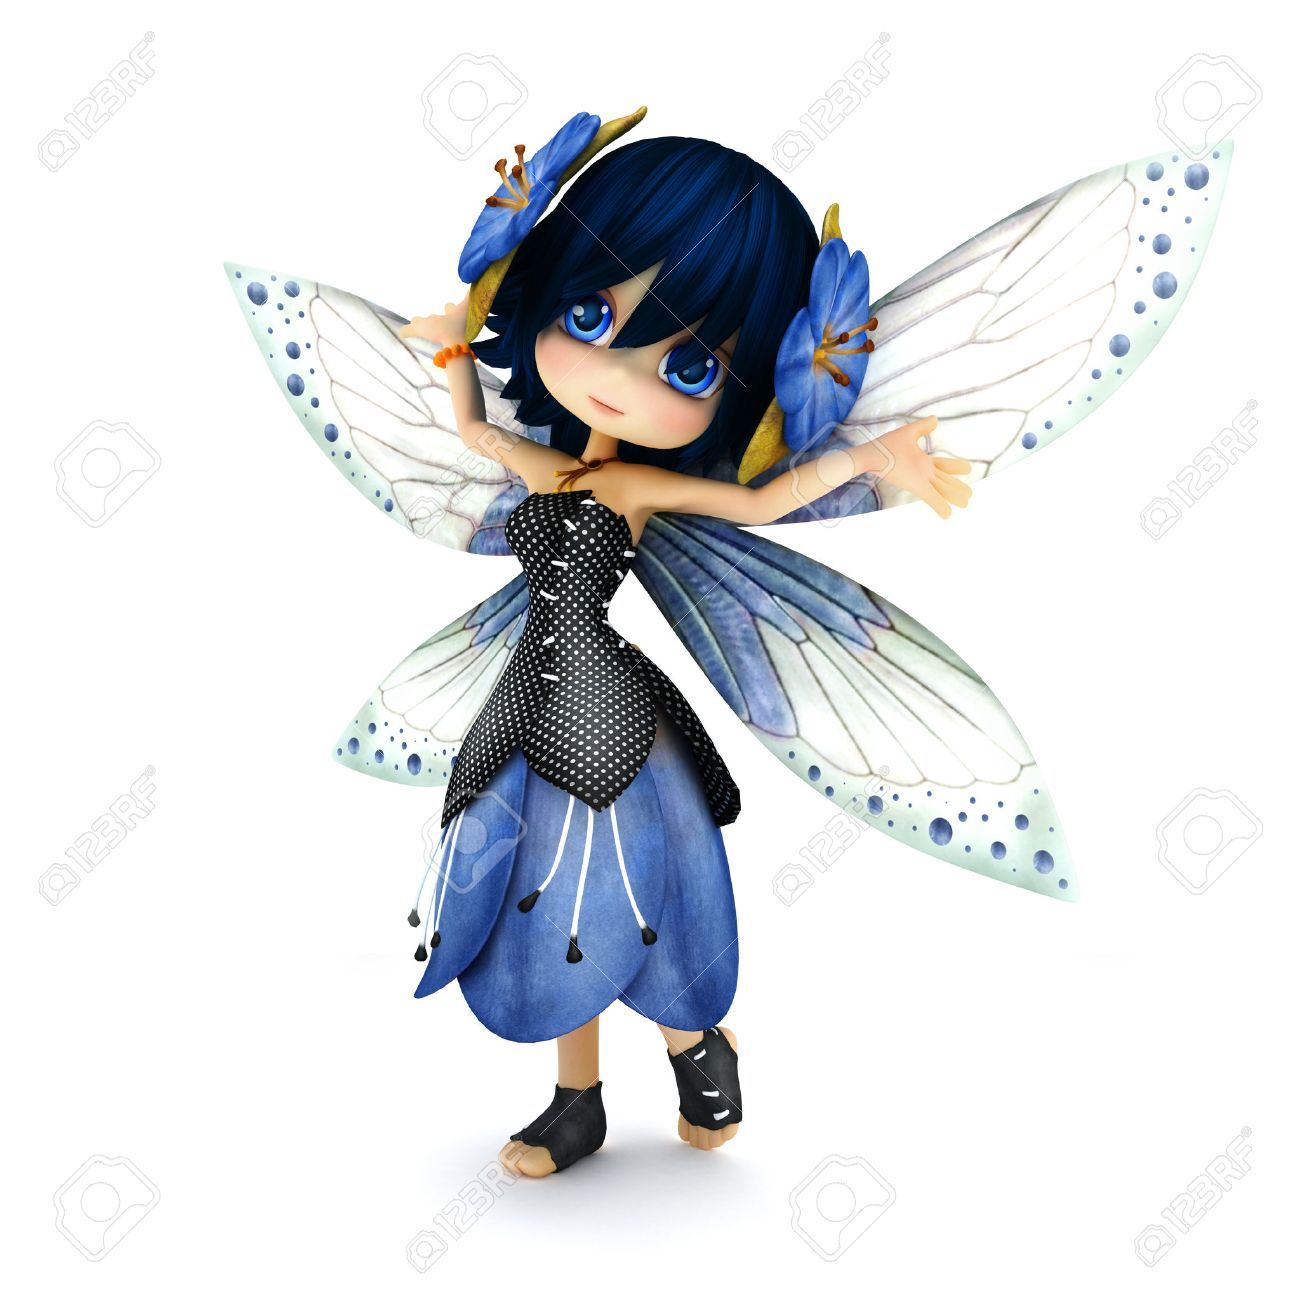 Cute toon fairy wearing blue flower dress with flowers in her hair posing on a white isolated background. Part of a little fairy series Standard-Bild - 43824426